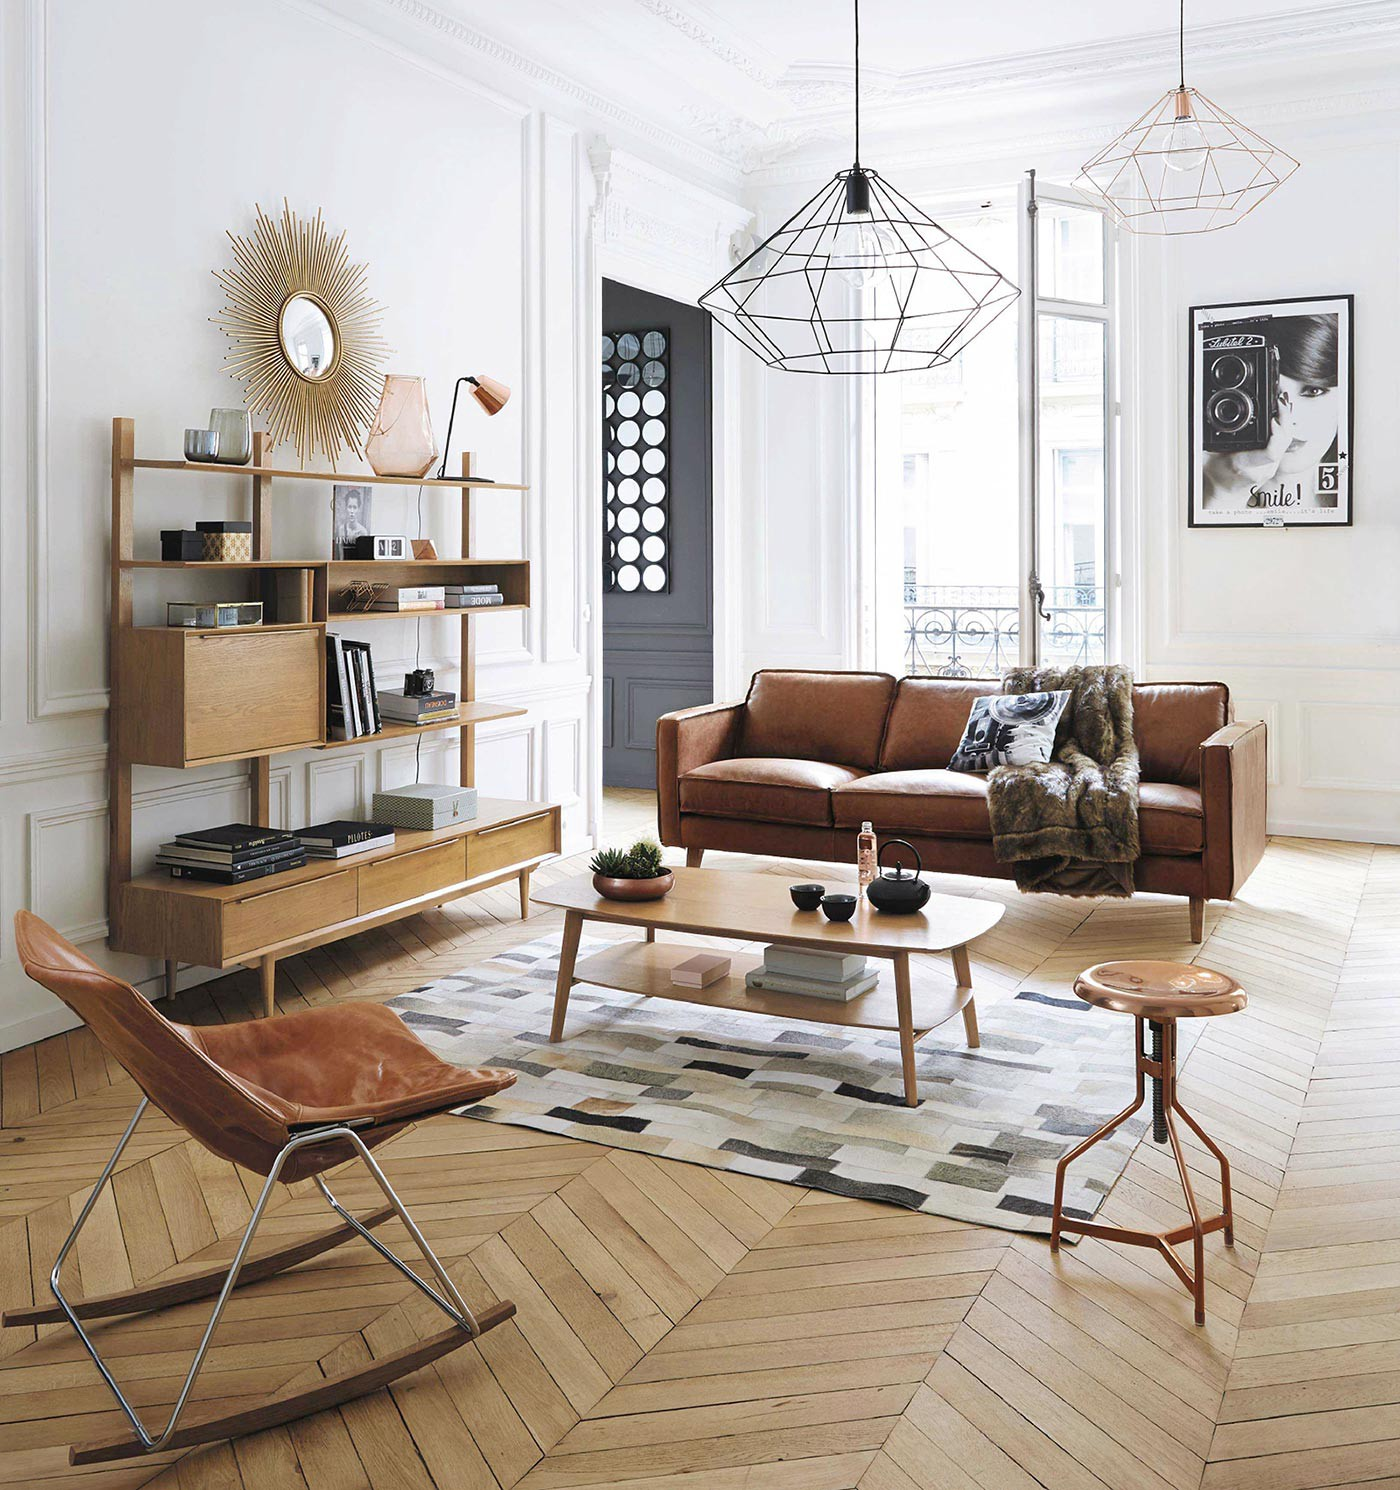 And Then Fade Away Some Stay Timeless For The Decades Moreover They Become More Por Monumental With Time Mid Century Design Of Interior